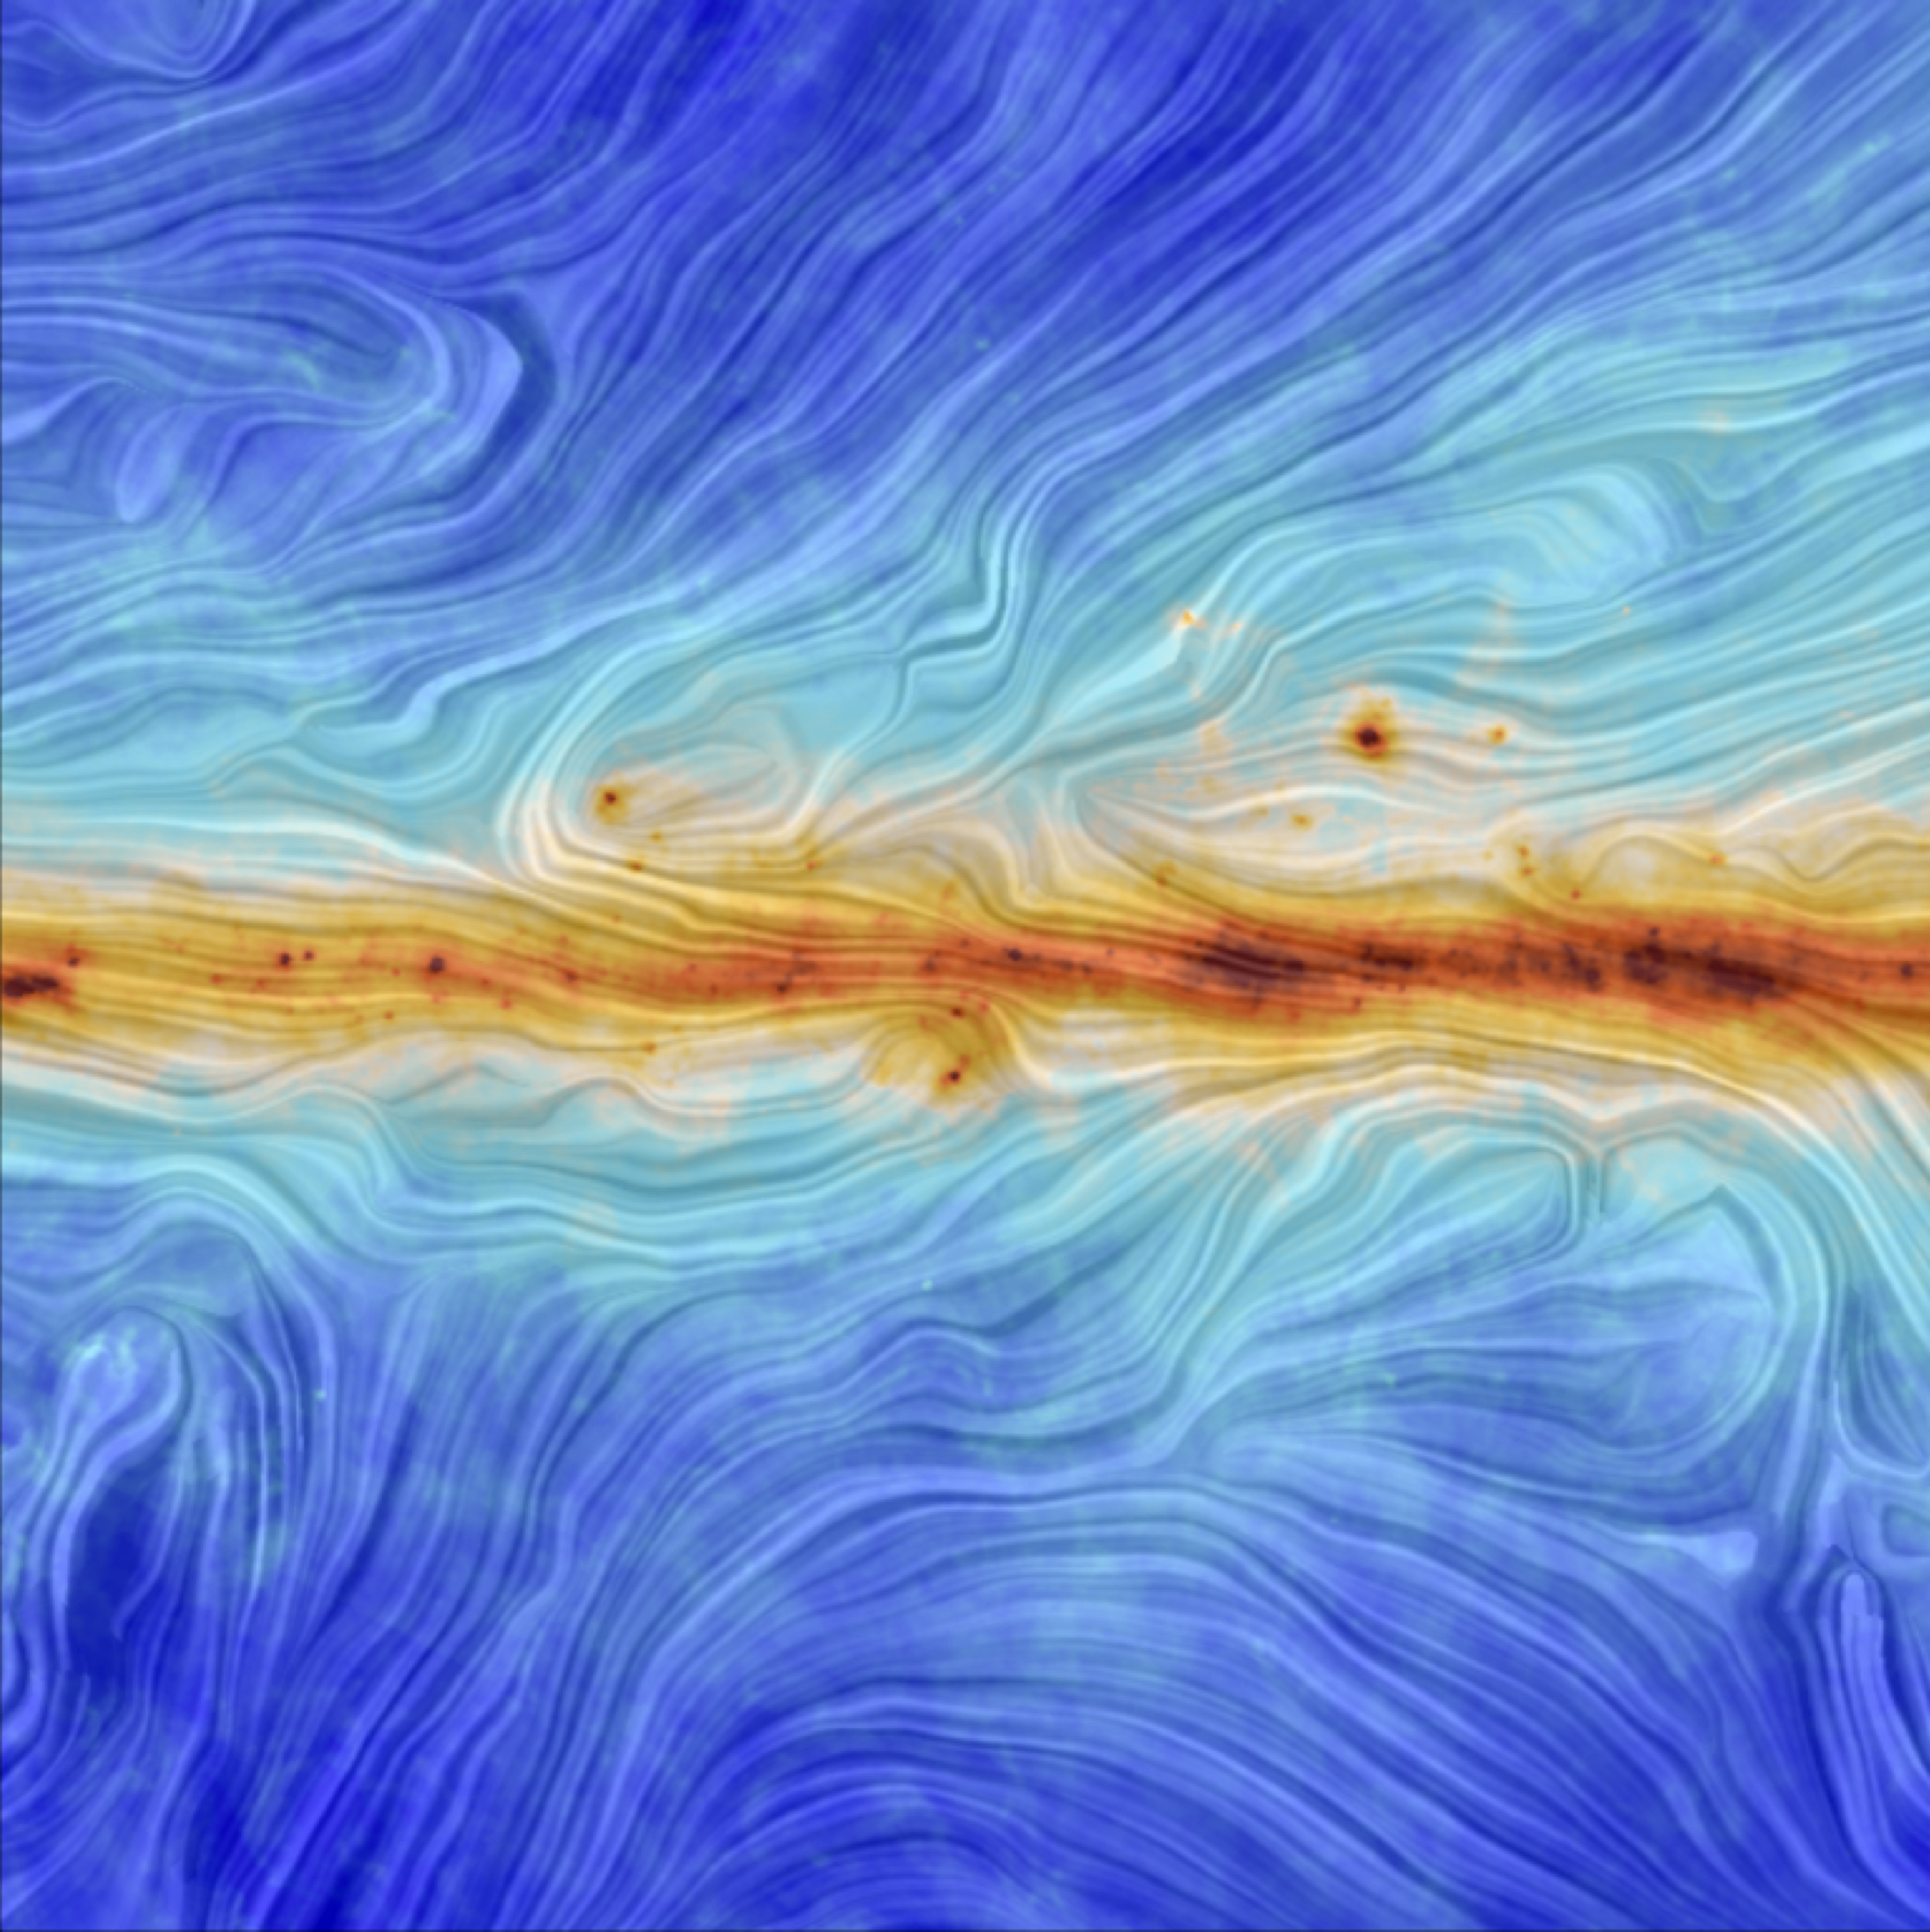 South African astrophysicist Renee Hlozek studies light patterns that reveal the total intensity of light emitted by interstellar dust in the Milky Way, revealing the structure of our galaxy's magnetic field to better understand the initial conditions of our universe. Photo: ESA/Planck Collaboration